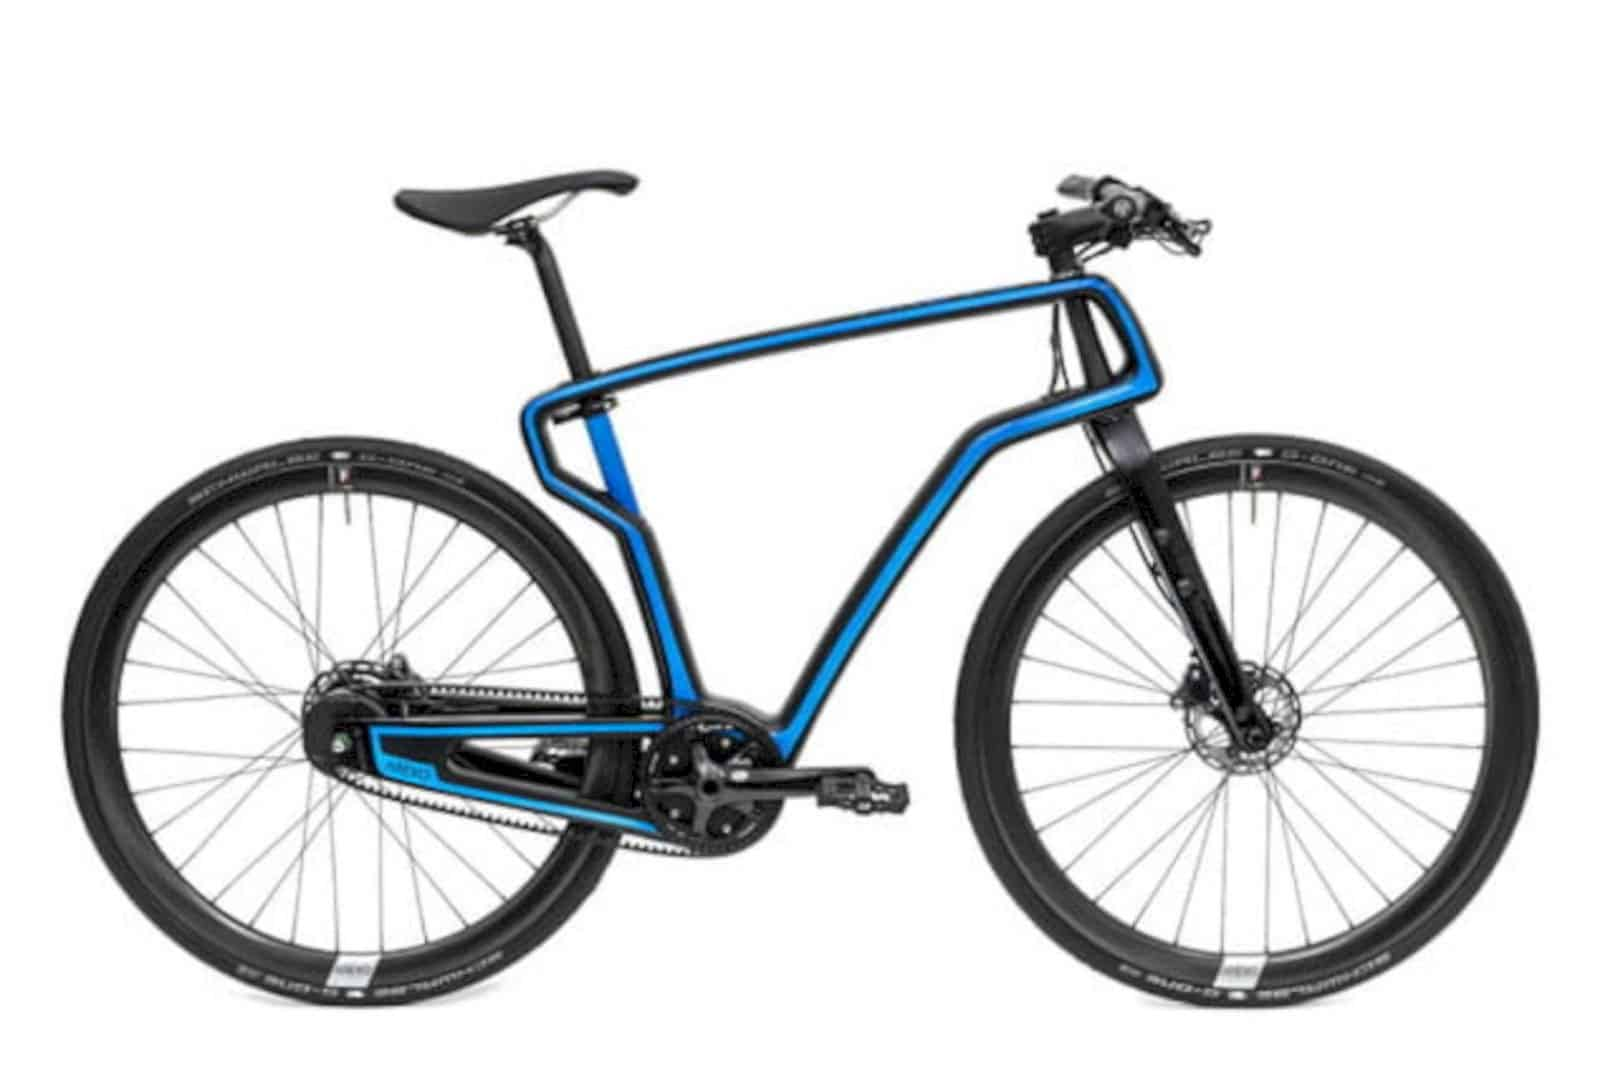 Arevo Became The Pioneer of 3D Printed Bike